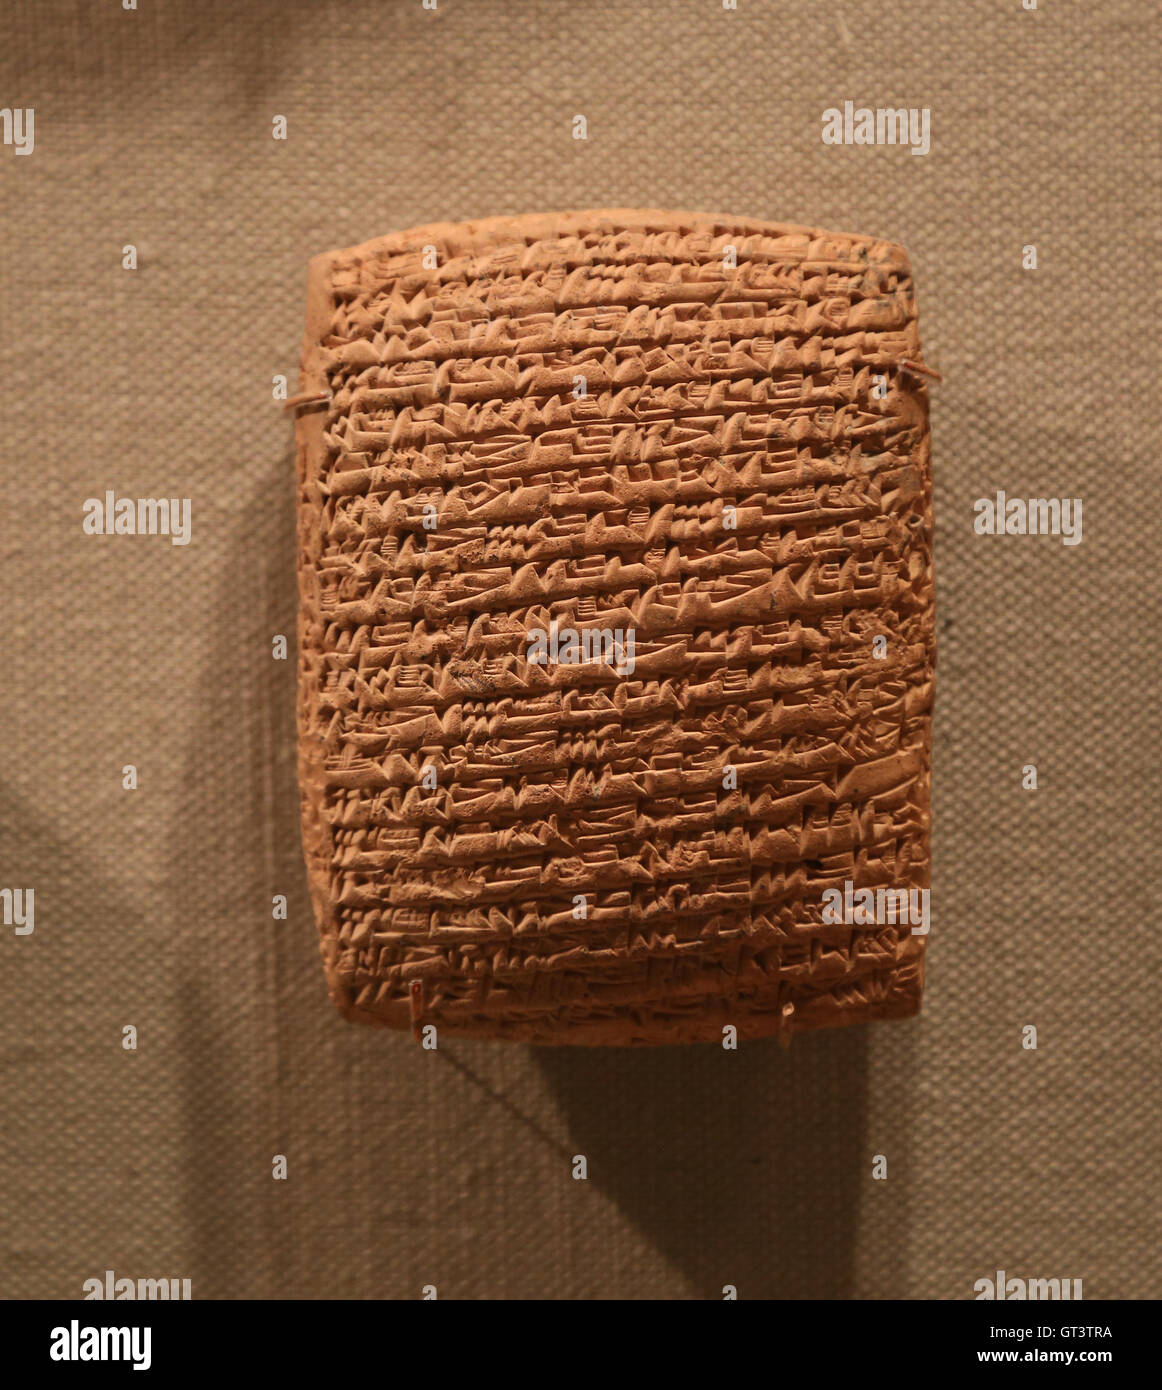 Cuneiform tablet. Clay. Old Assyrian trading colony. Middle Bronze Age. 20th-19th century B.C. - Stock Image